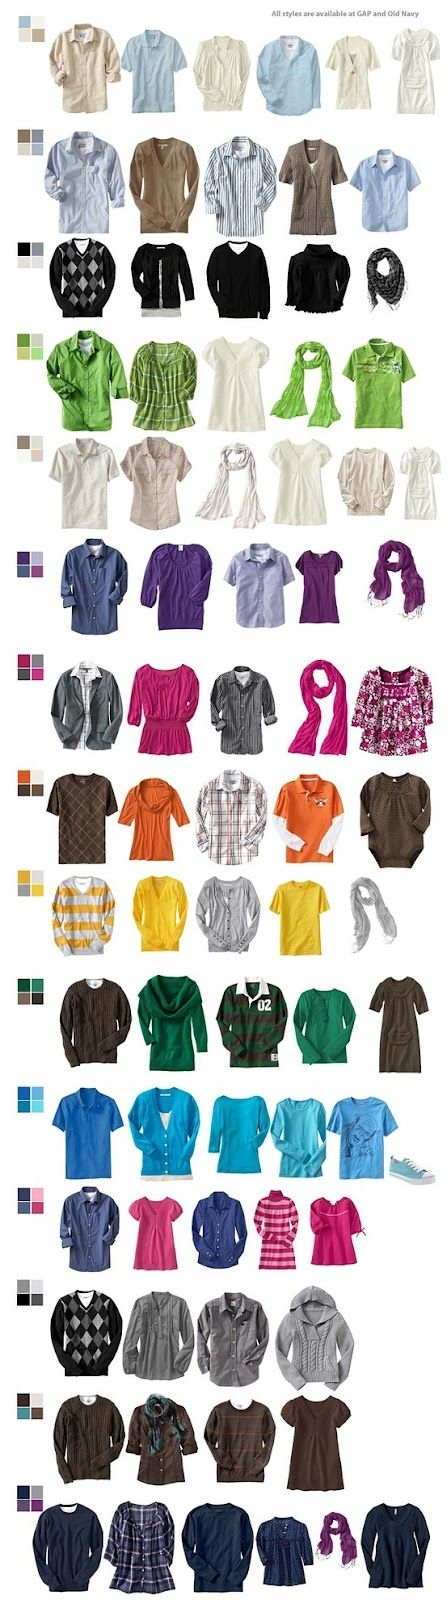 Family Portrait Clothing Ideas | blog: Fall Portrait Clothing Ideas | What to Wear for Fall Family Portraits: Use a color pallet, but don't go matchy-matchy. Only babies belong in light colors. Long sleeves are essential. by virgie